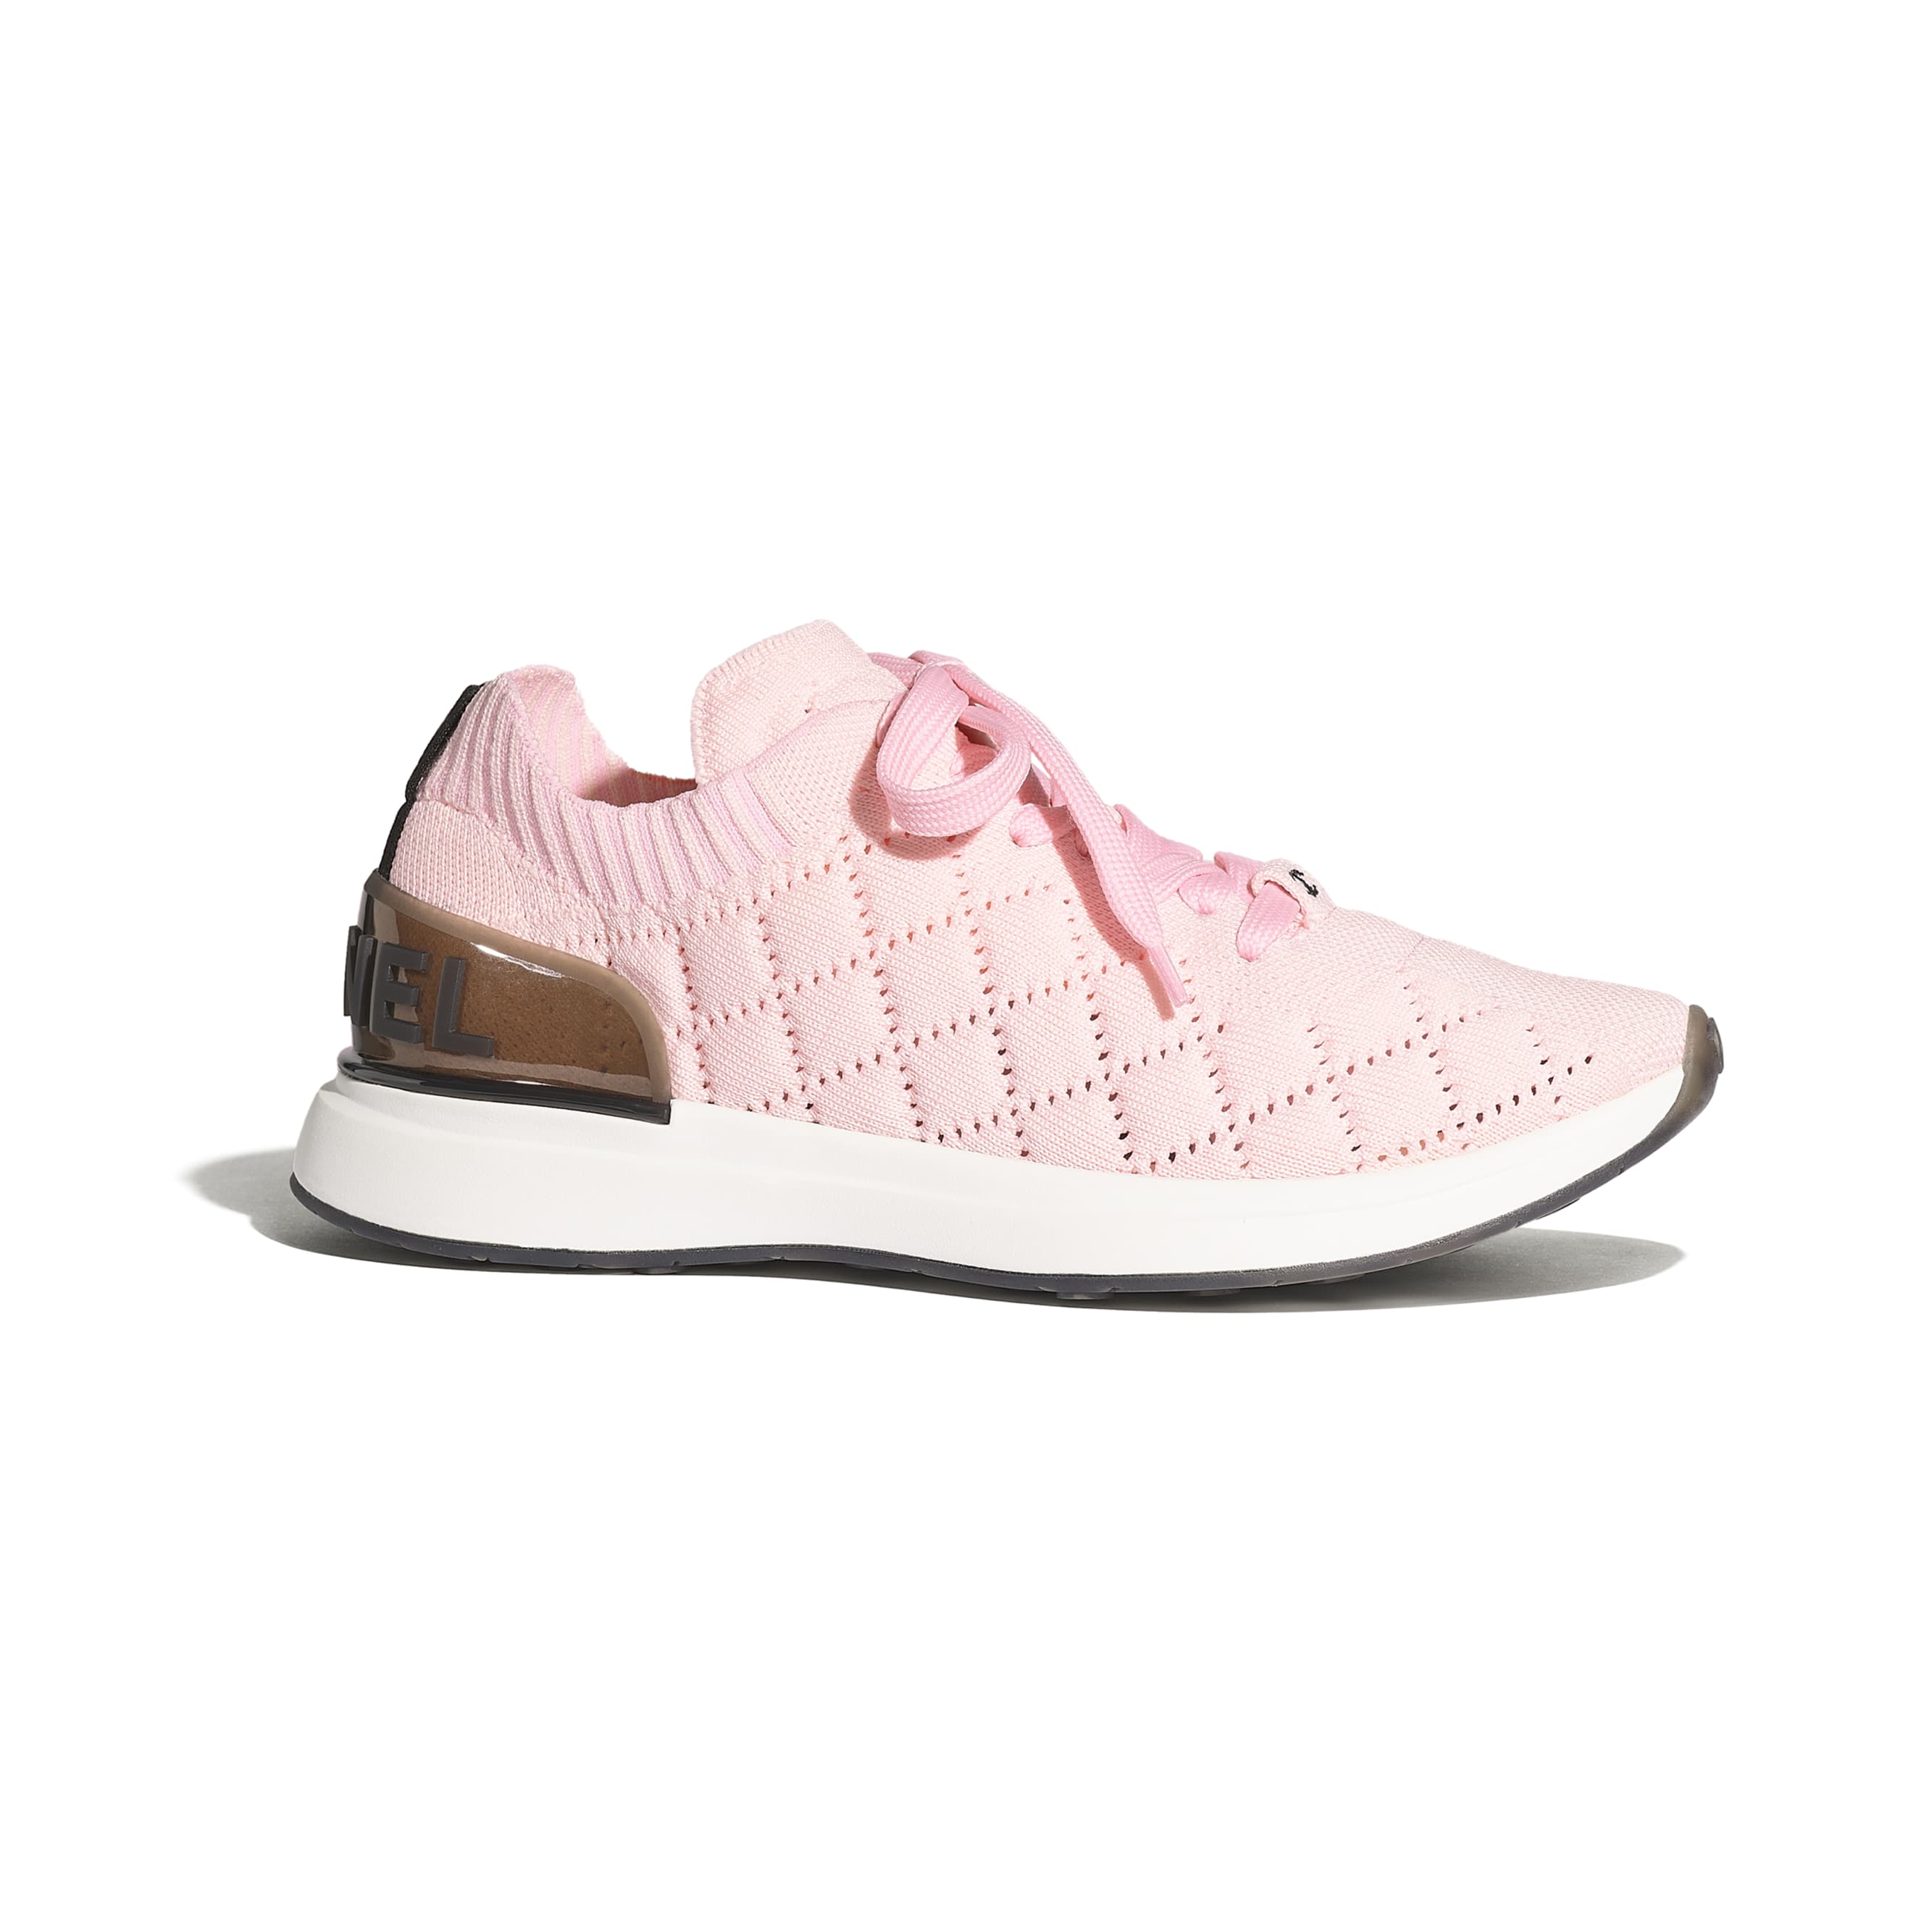 Trainers - Pink - Mixed Fibres - CHANEL - Default view - see standard sized version